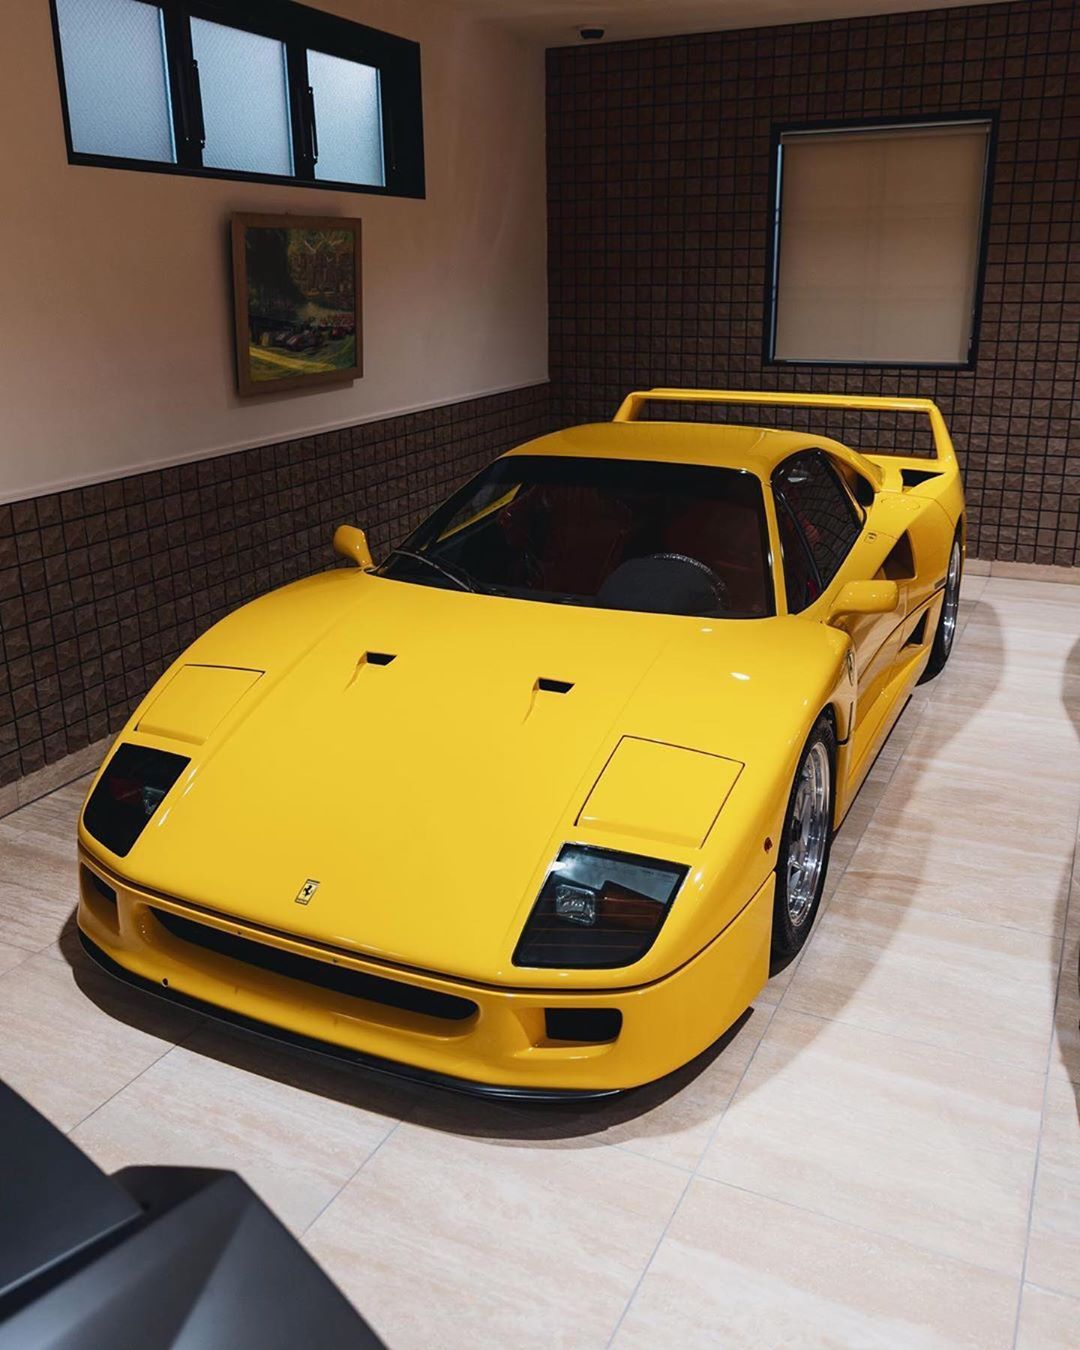 Regular Yellow F40 Or Not Regular F40 Lm That Is The Question